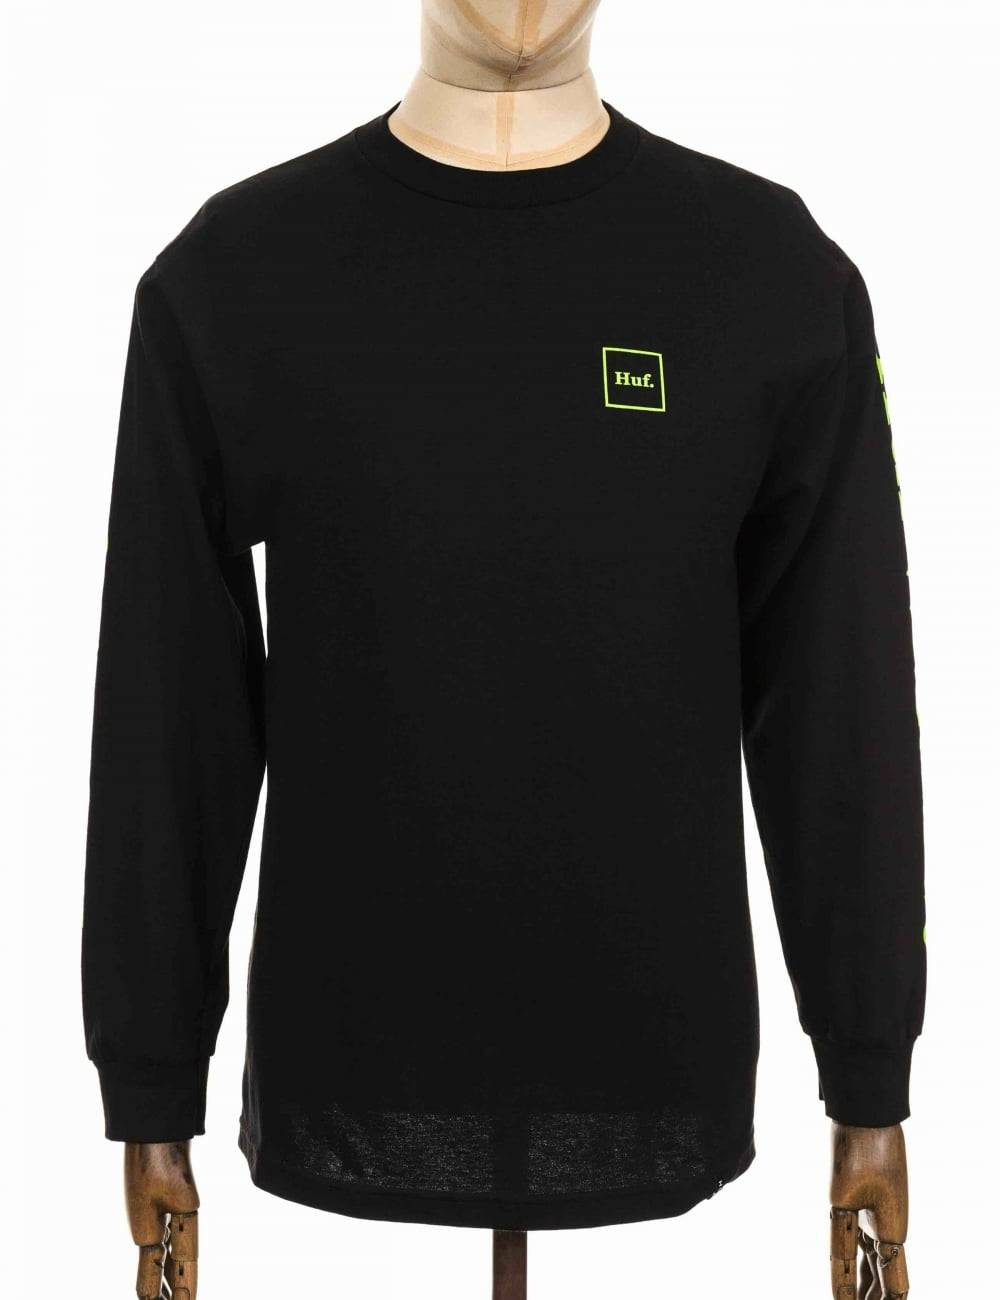 Huf L/S Domestic T-shirt - Black Size: Medium, Colour: Black